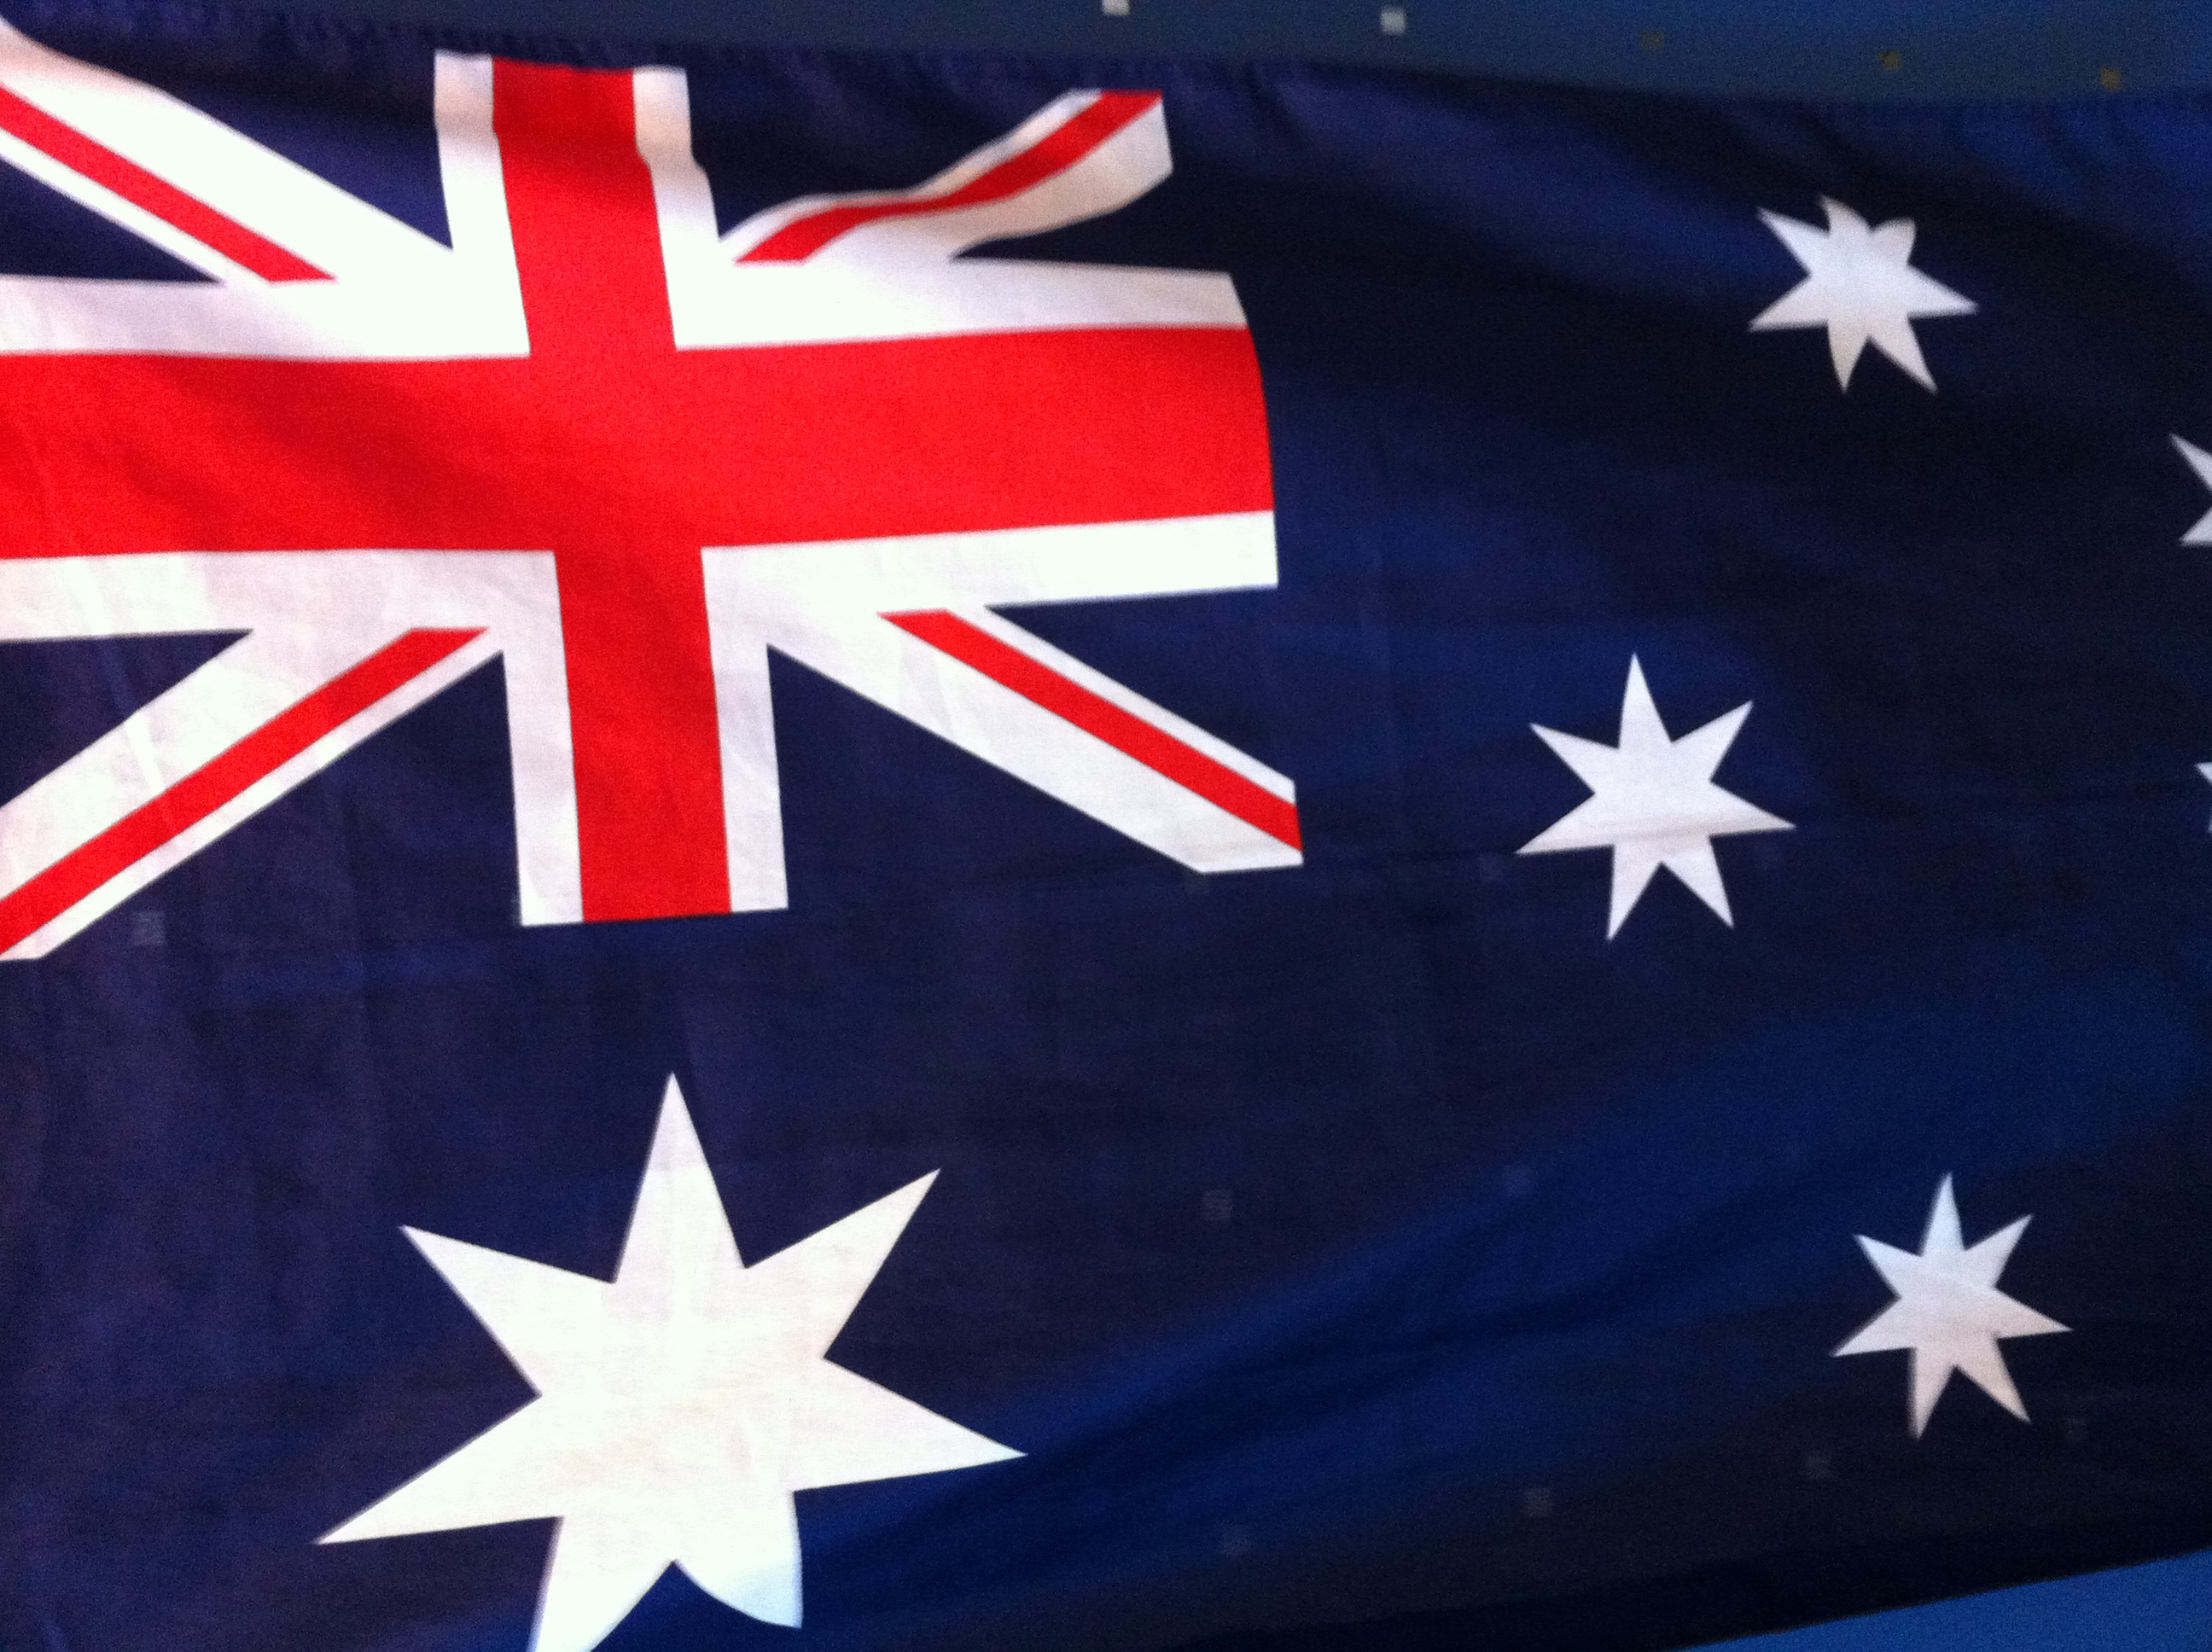 Caption: Australian flag